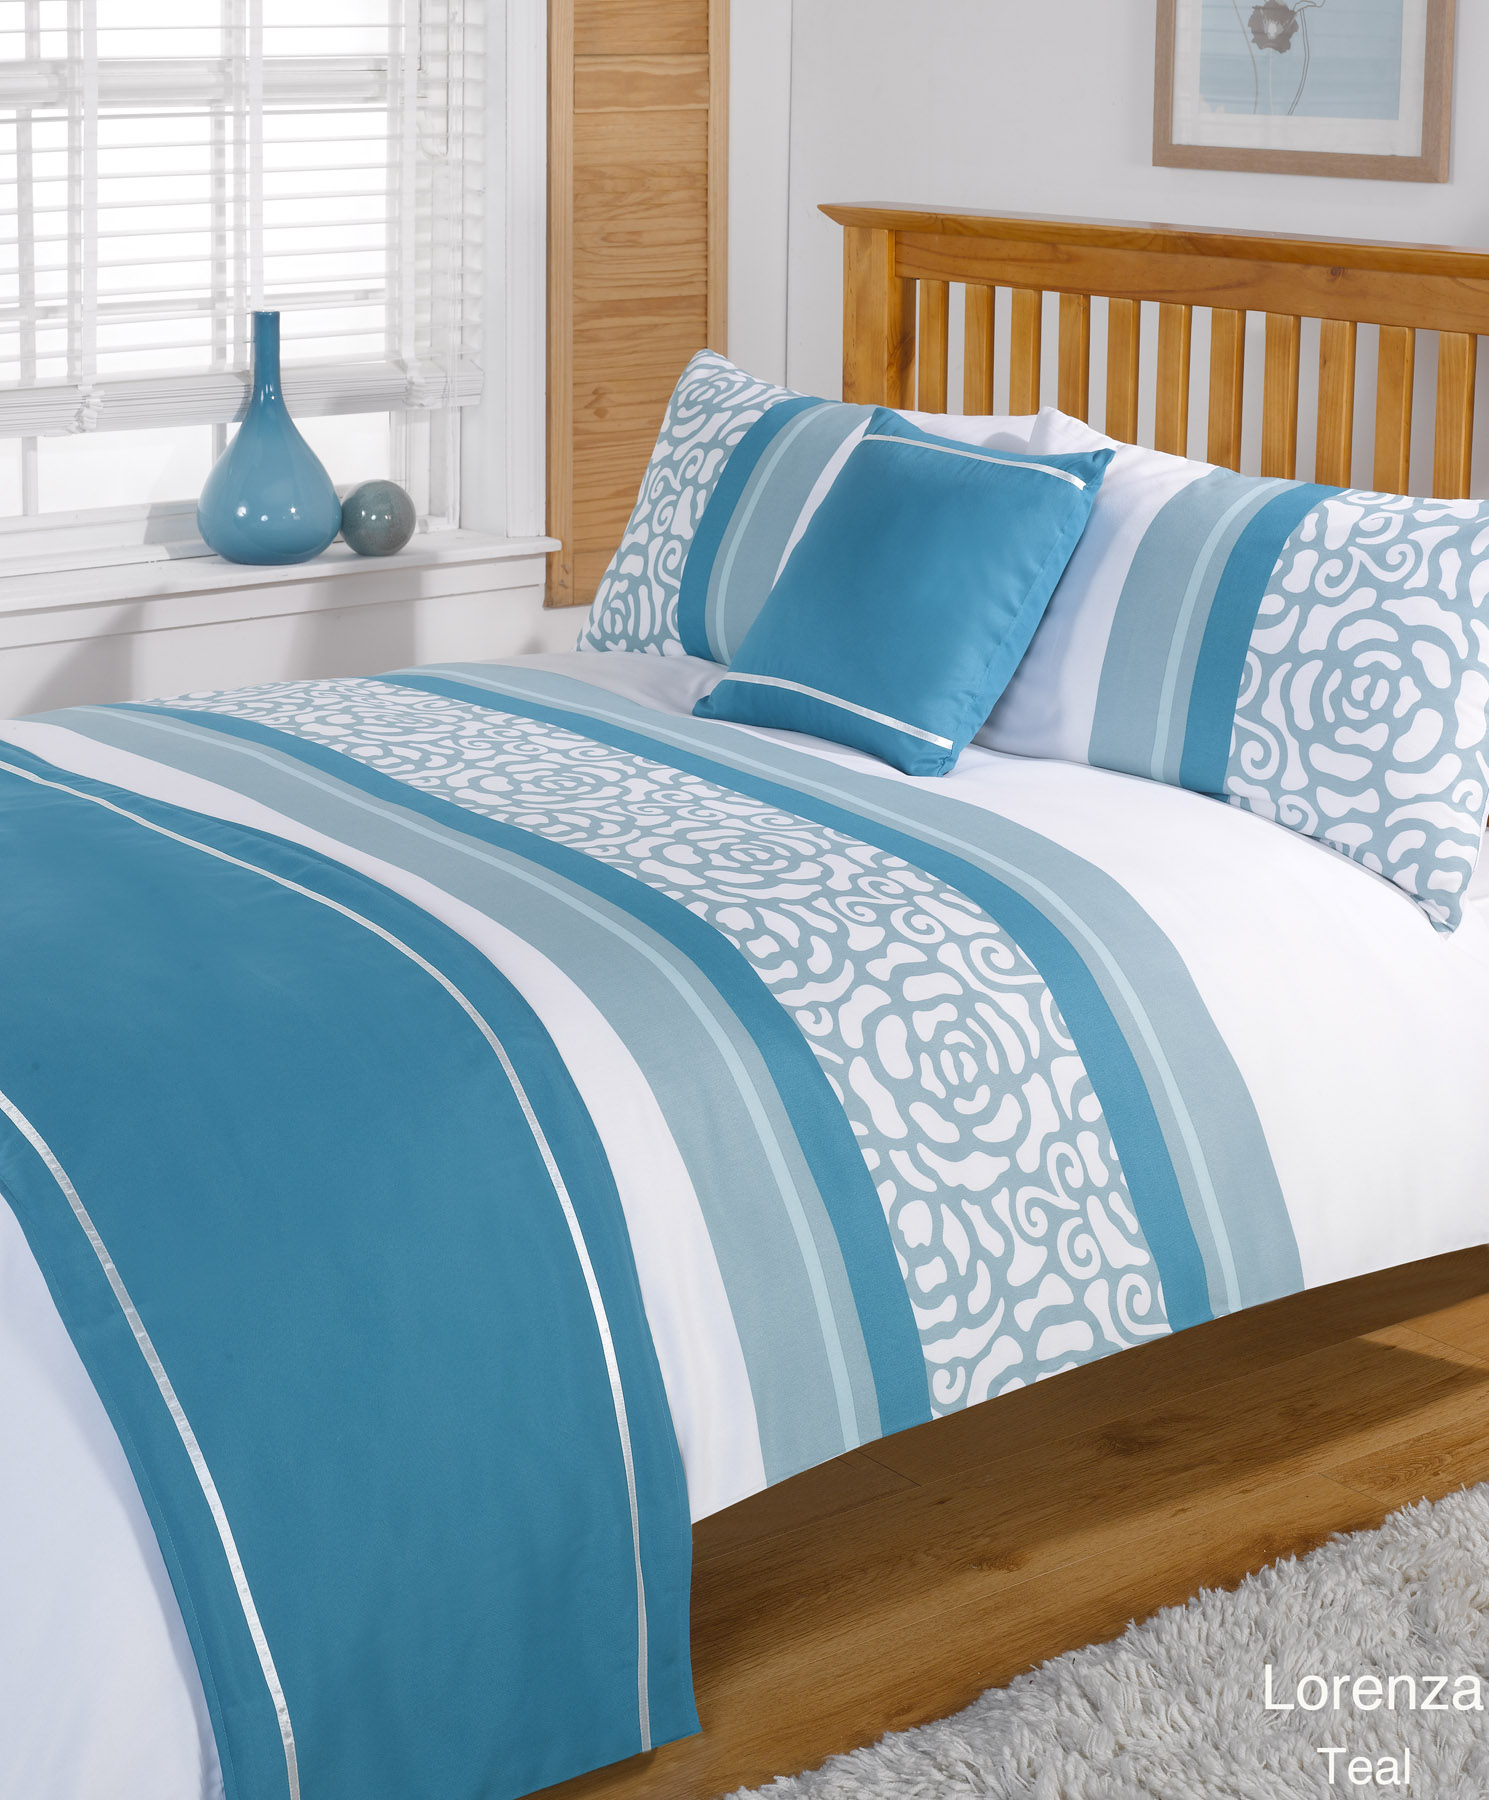 duvet covers from getson.ga Looking for a new duvet cover? Whether it is for your hypoallergenic bedding needs or simply to change the style of your room, getson.ga's wide selection of duvet covers .